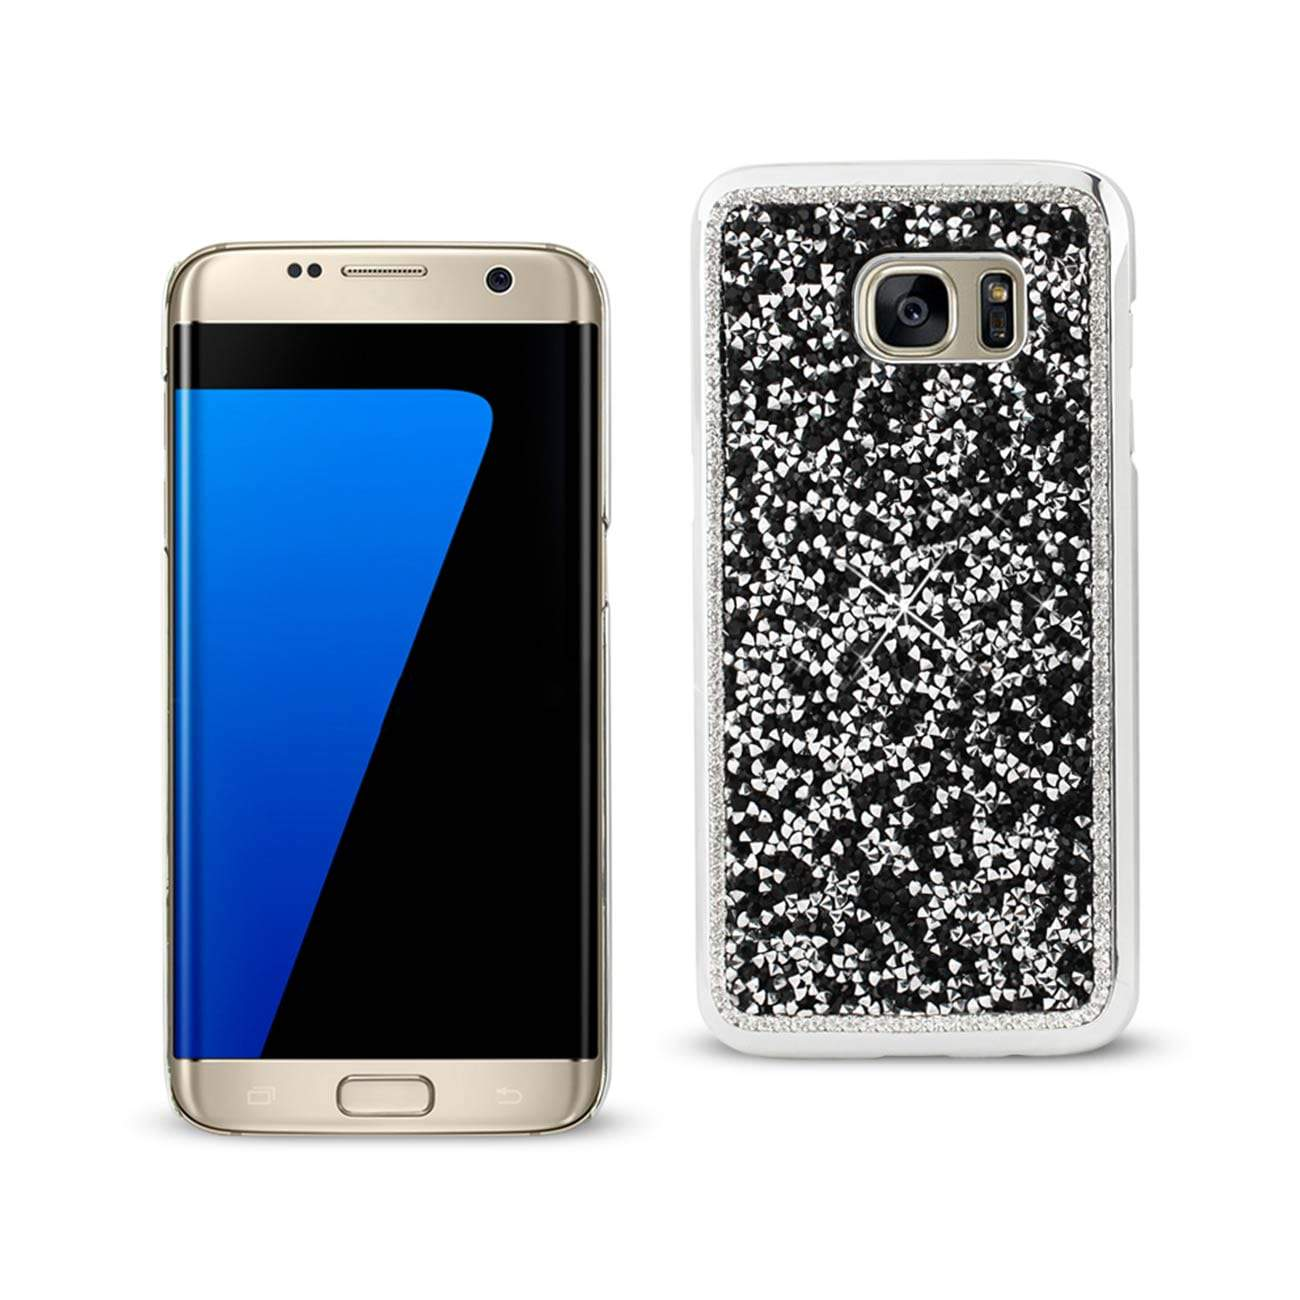 SAMSUNG GALAXY S7 EDGE JEWELRY BLING RHINESTONE CASE IN BLACK